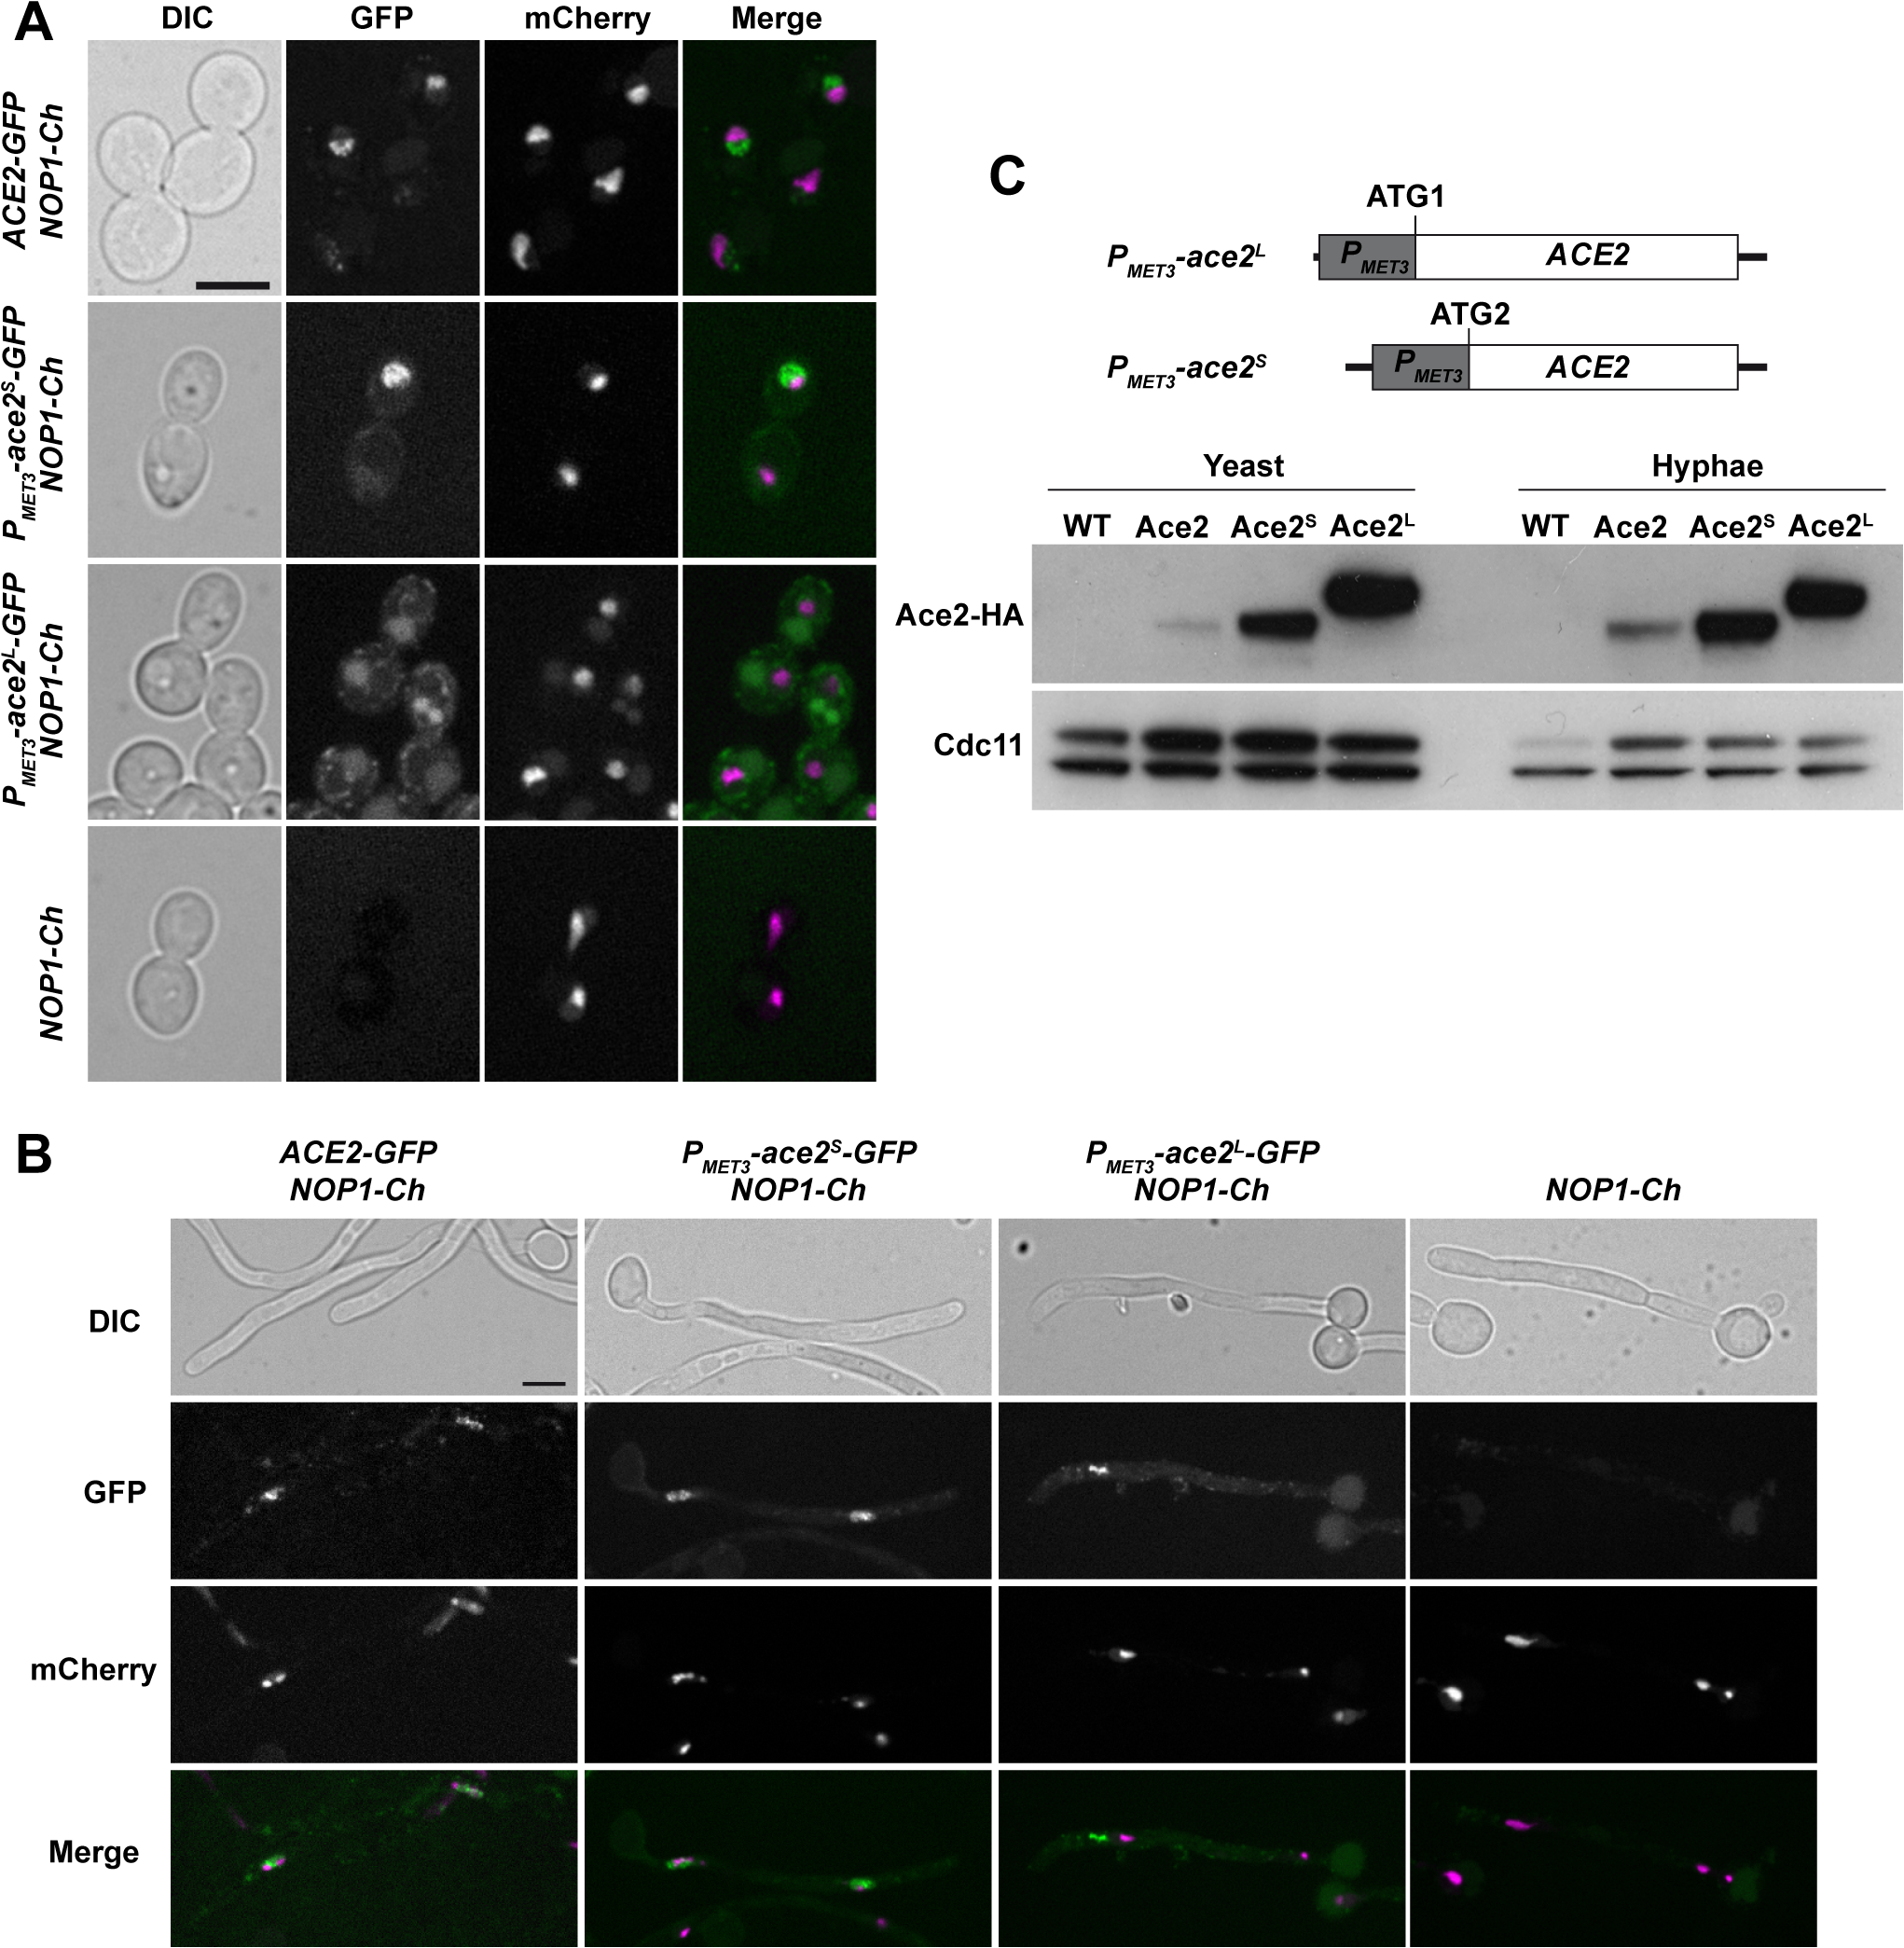 Localization of Ace2 in yeast and hyphae.